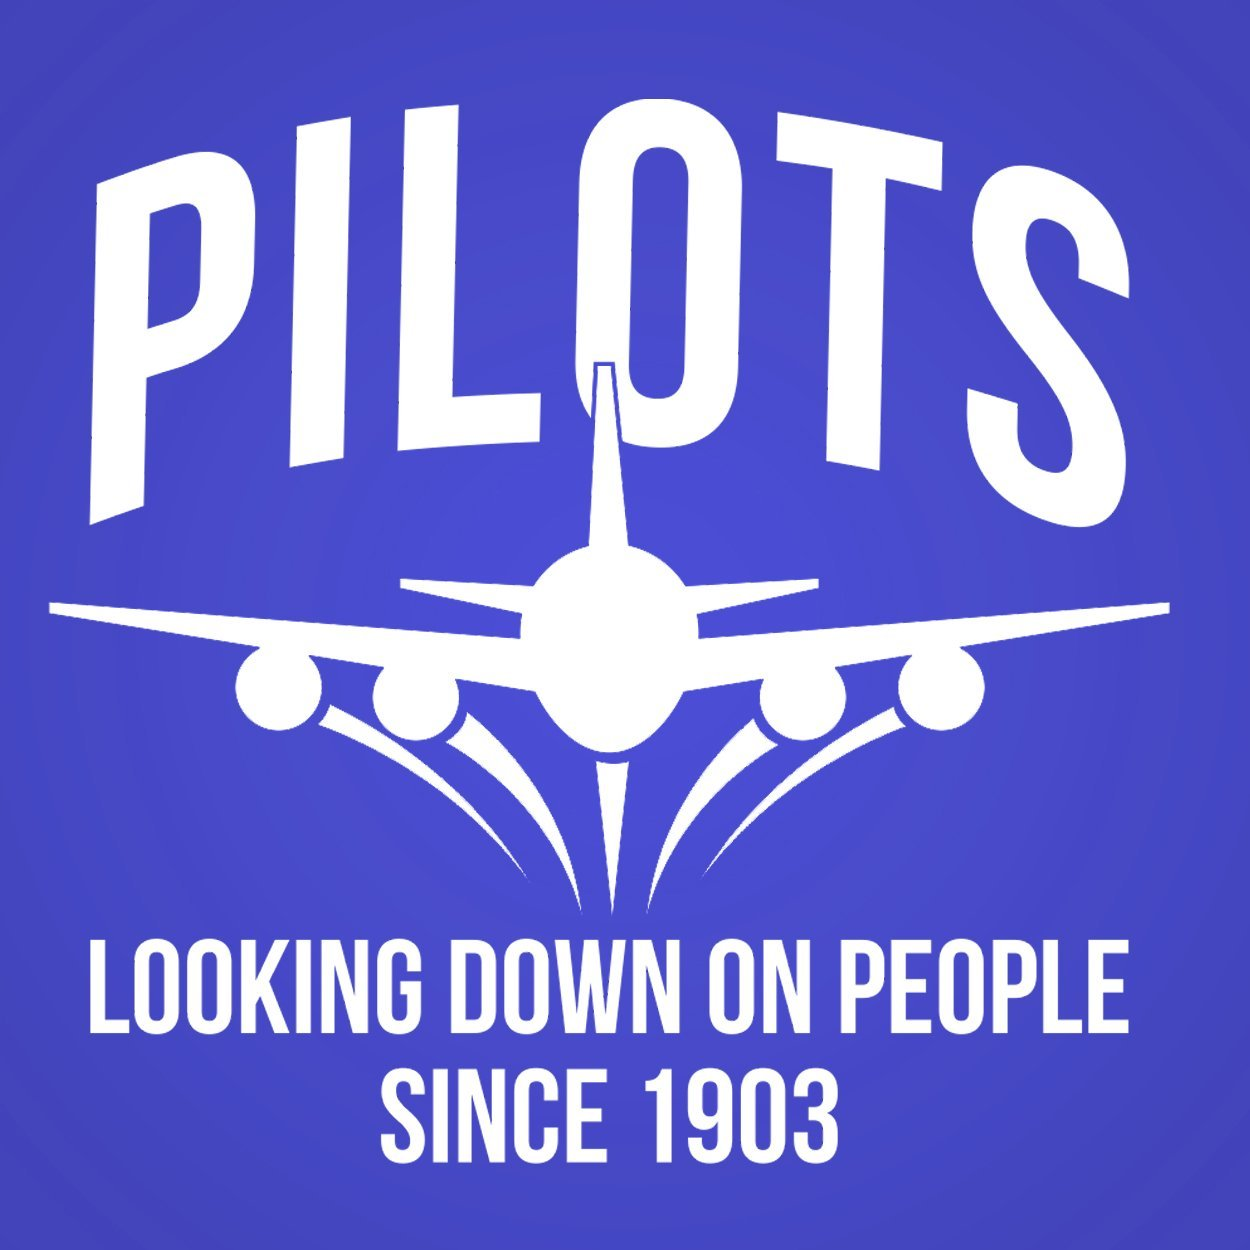 Pilots Looking Down On People